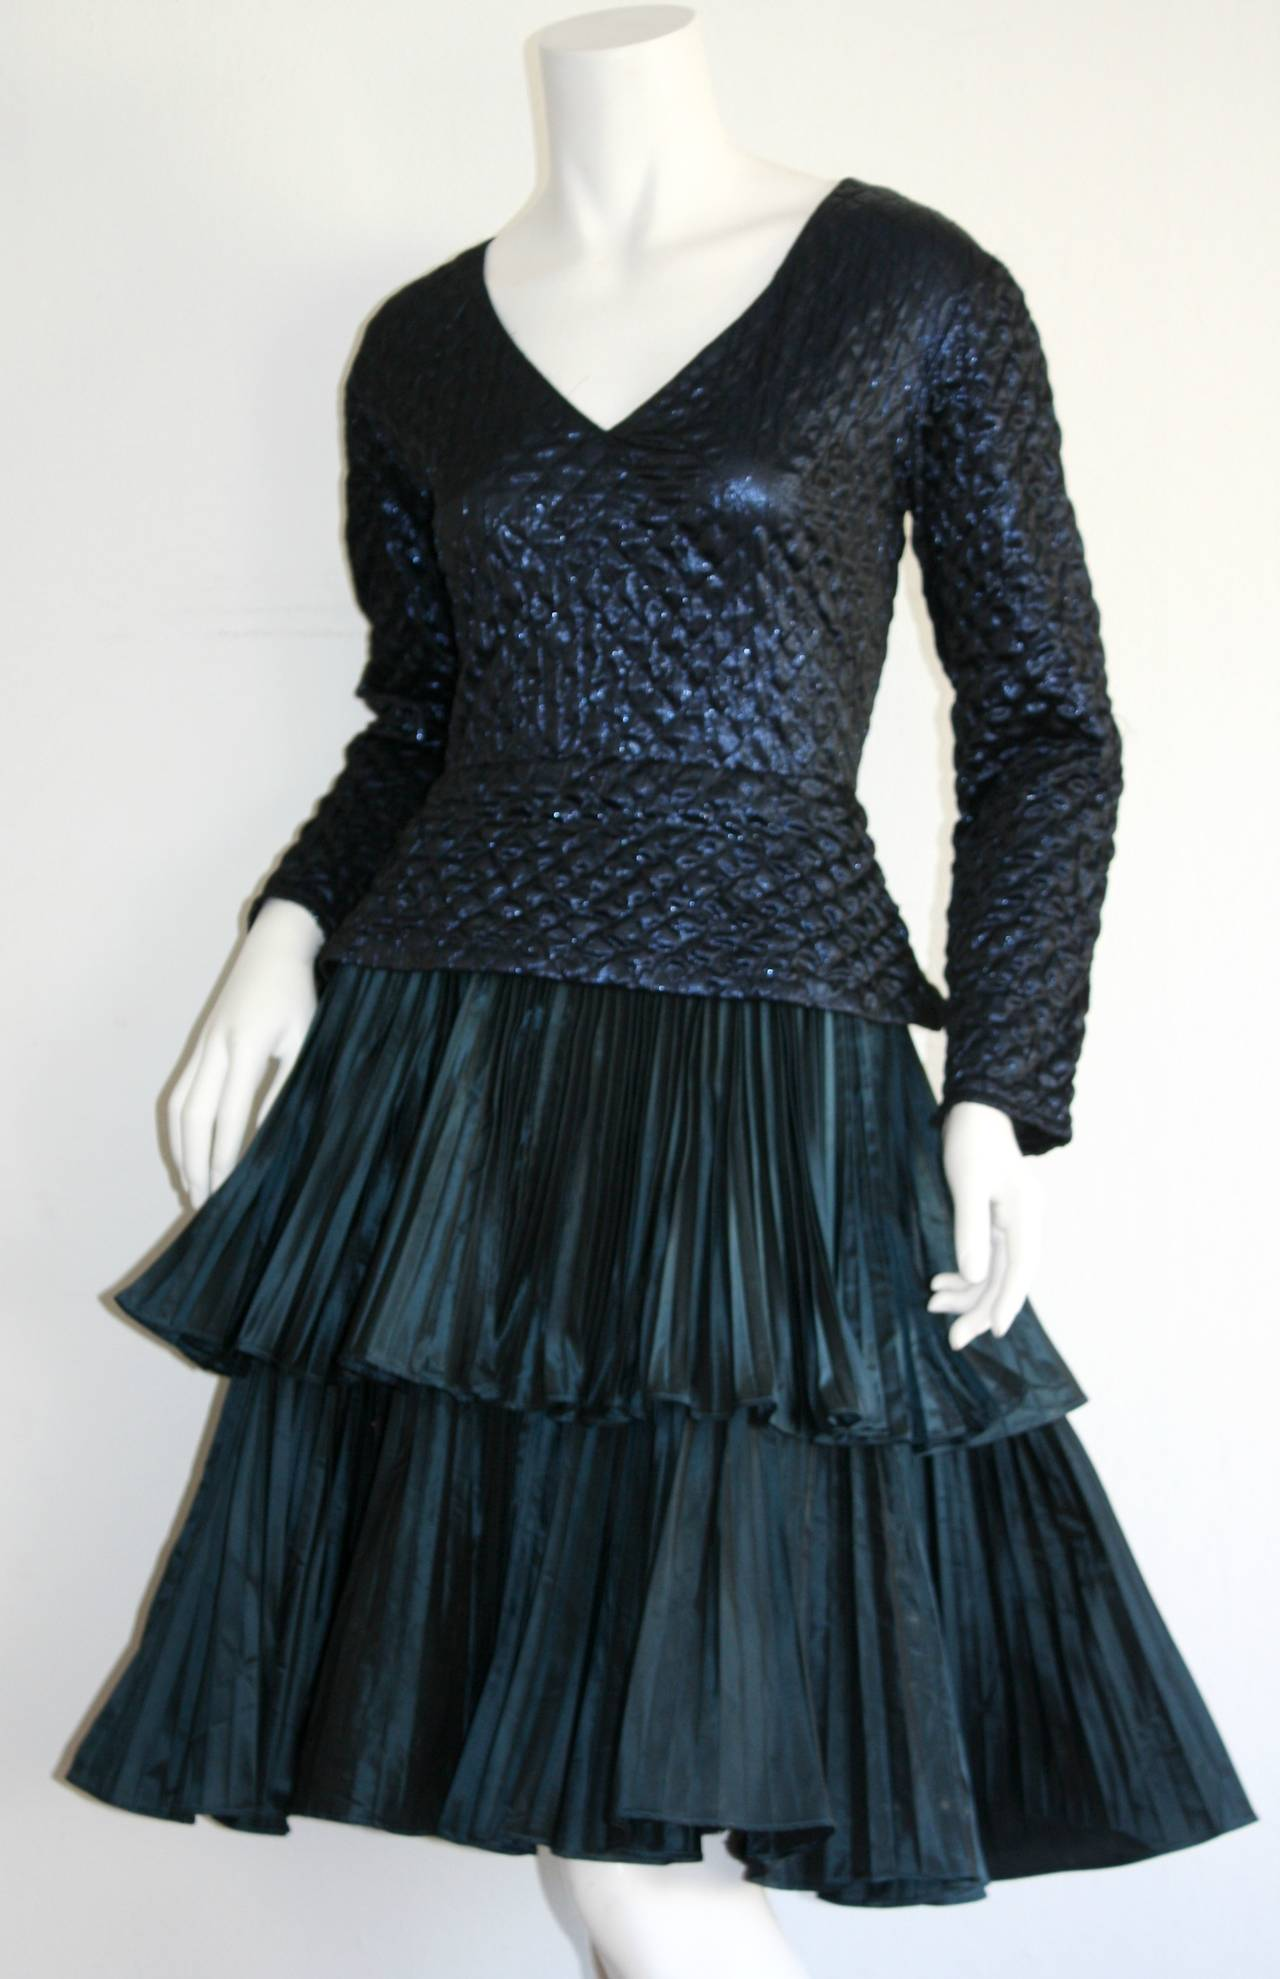 Bernard Perris Beautiful Navy Blue Metallic Quilted Accordion Tiered Dress In Excellent Condition For Sale In Chicago, IL